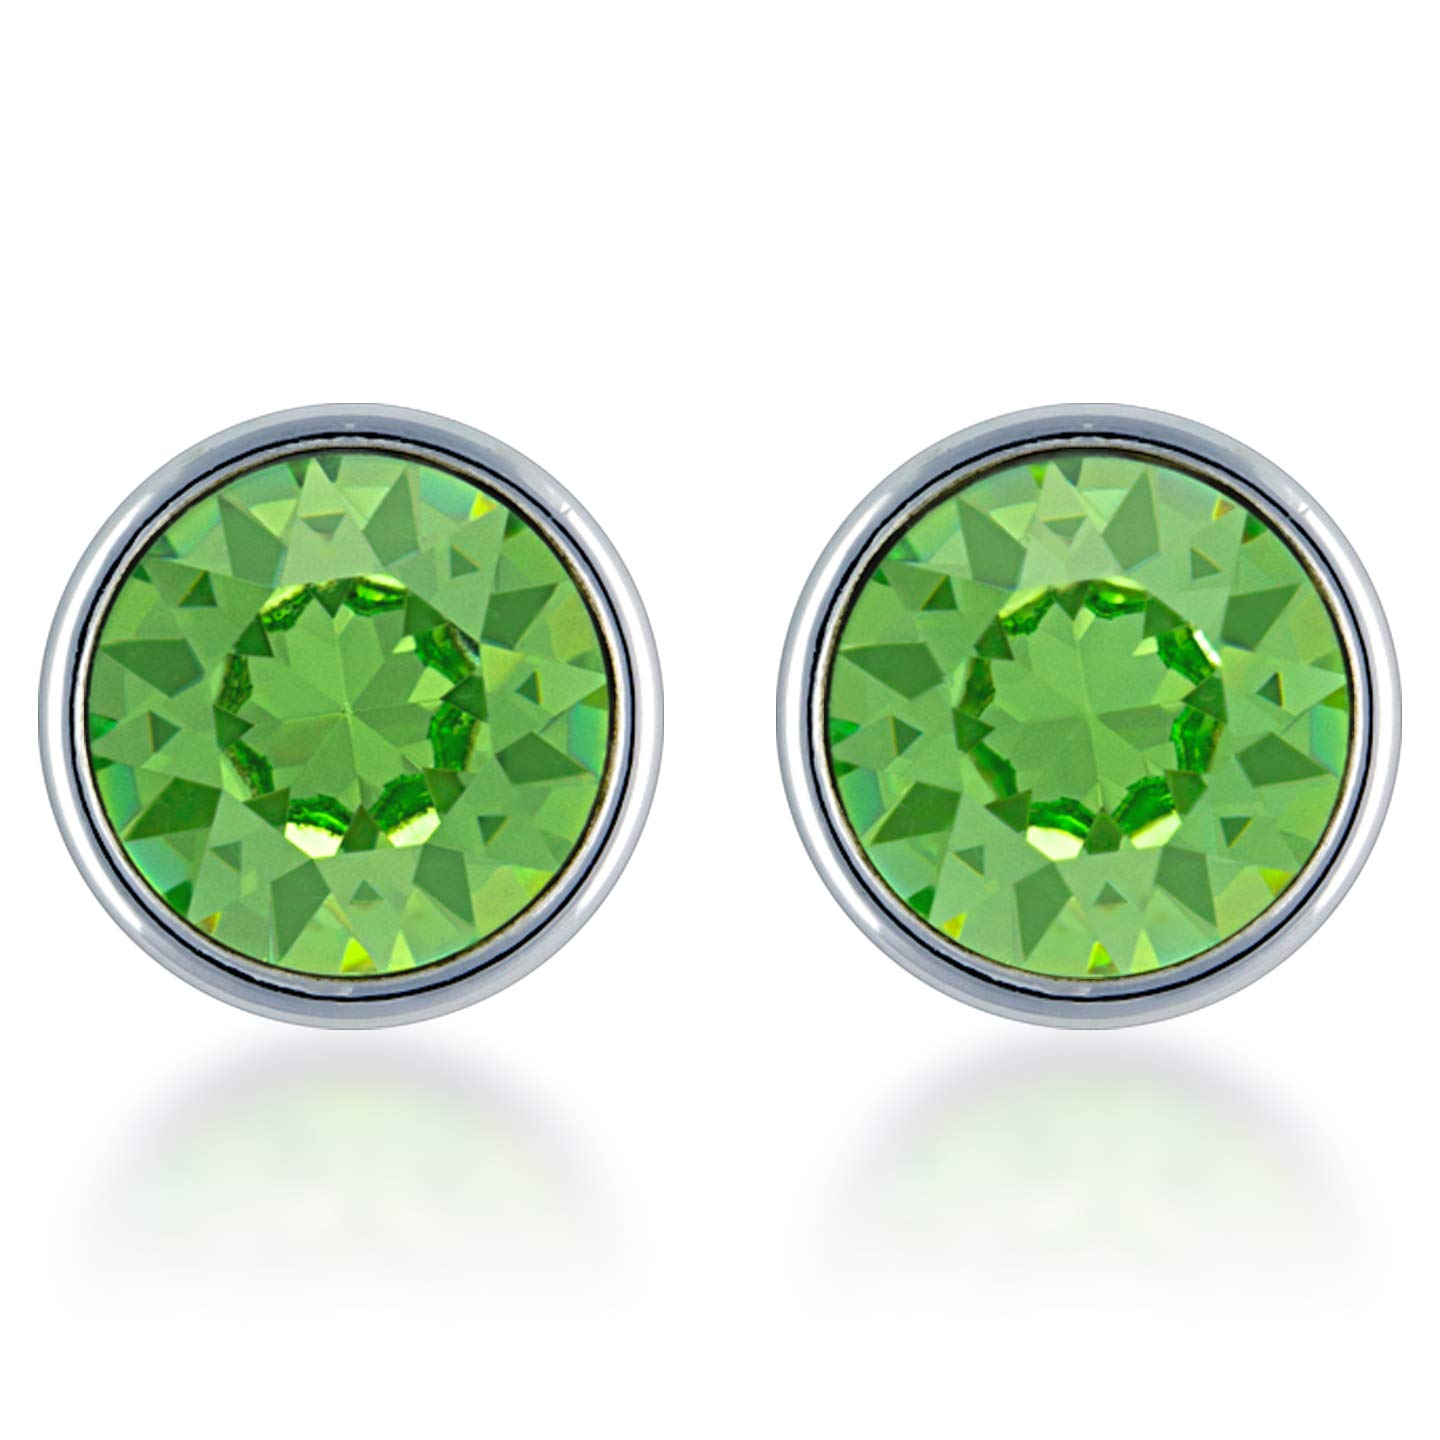 Stud Earrings with Green Peridot Round Crystals from Swarovski Silver Toned Rhodium Plated